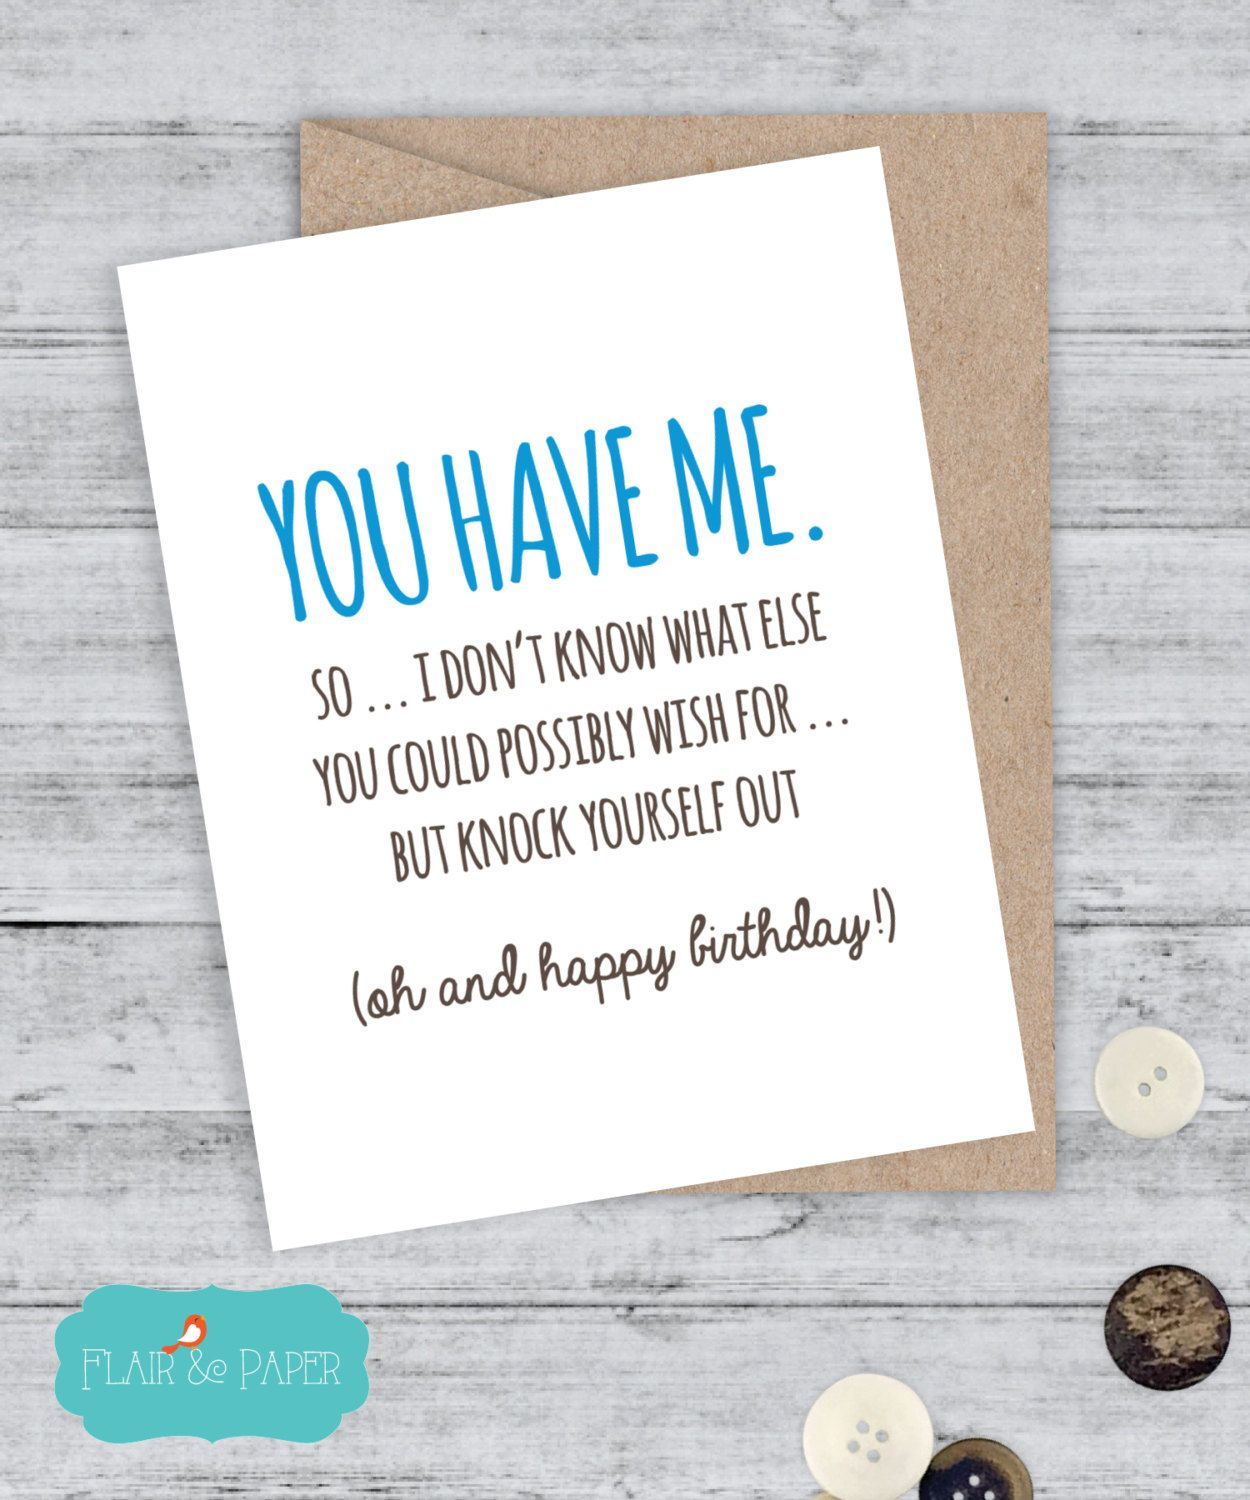 Birthday Card Boyfriend Card Funny Girlfriend Birthday Card I Love You Card  Quirky Snarky Greeting Just For Fun You Have Me, Happy Birthday By  FlairandPaper ...